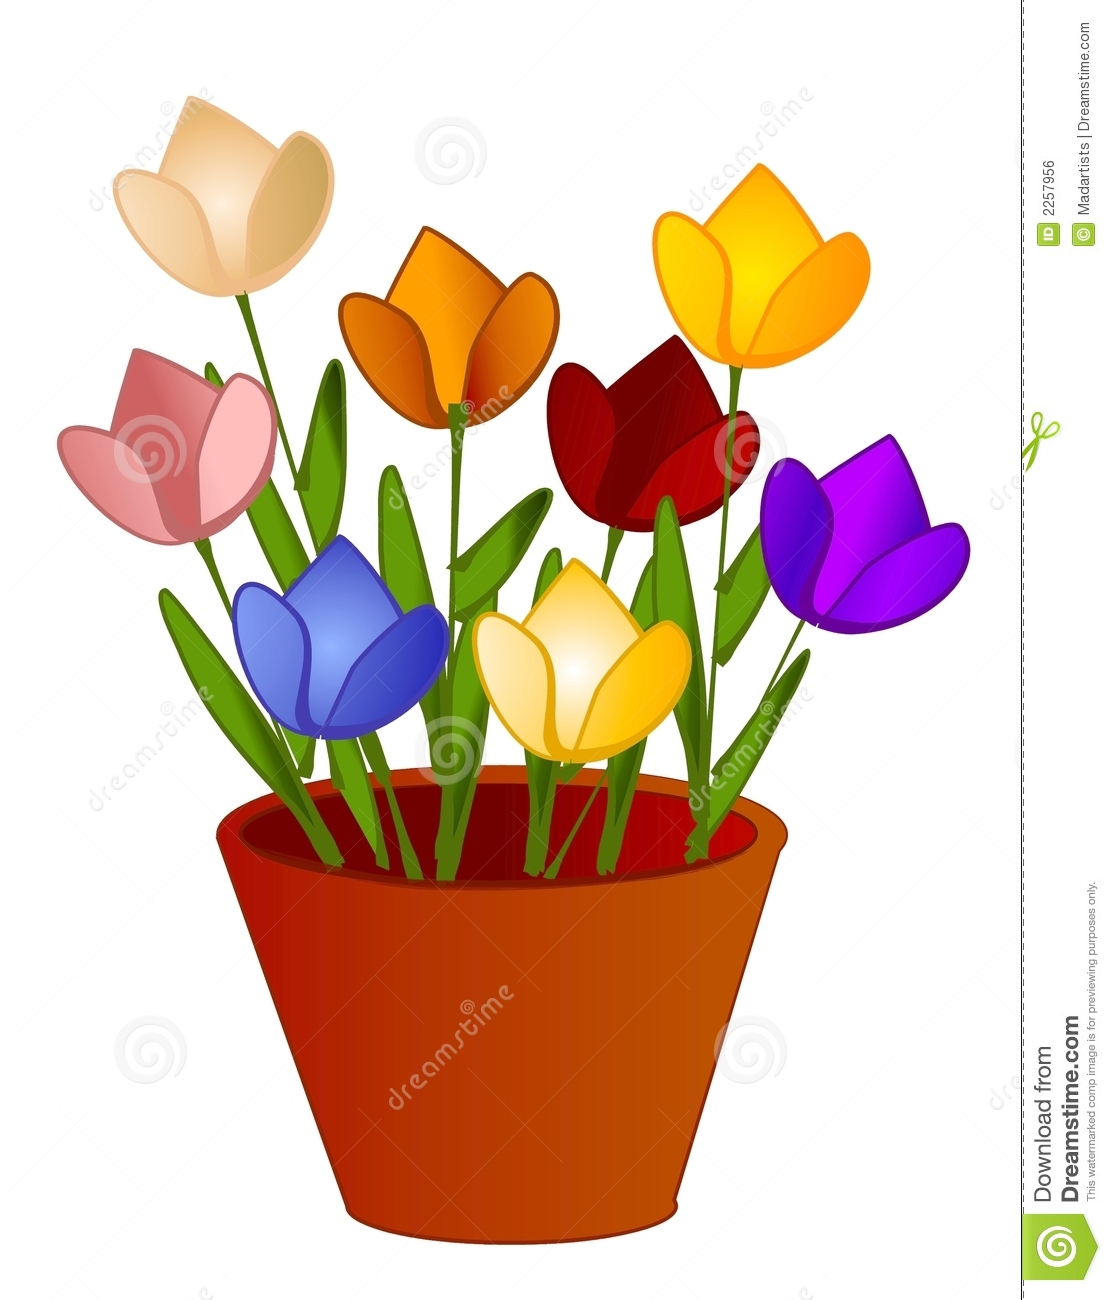 clipart flower in pot - photo #42